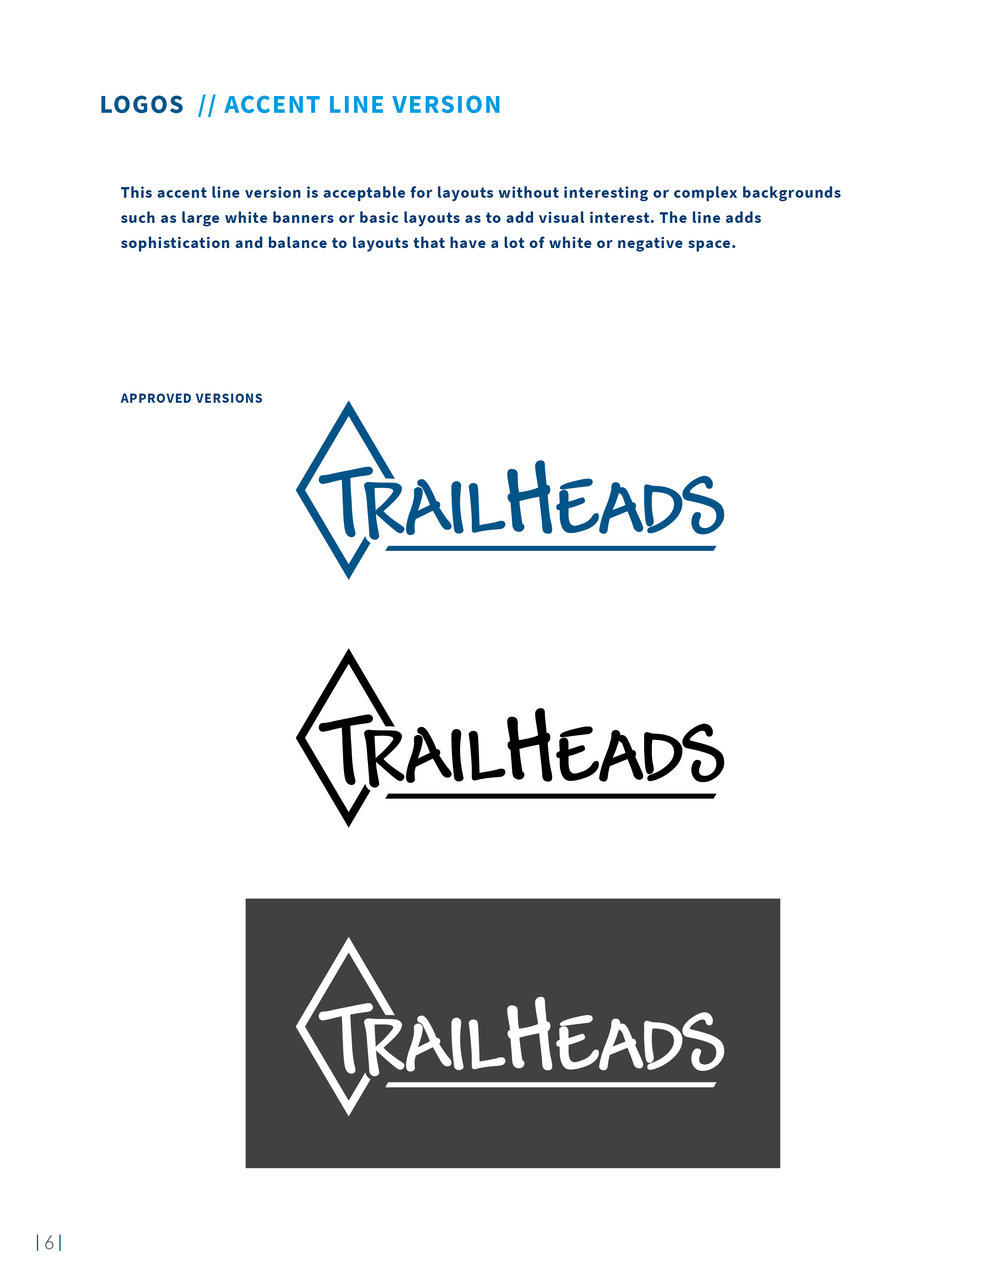 apparel-company-brand-guidelines-design-by-jordan-fretz-design-16.jpg